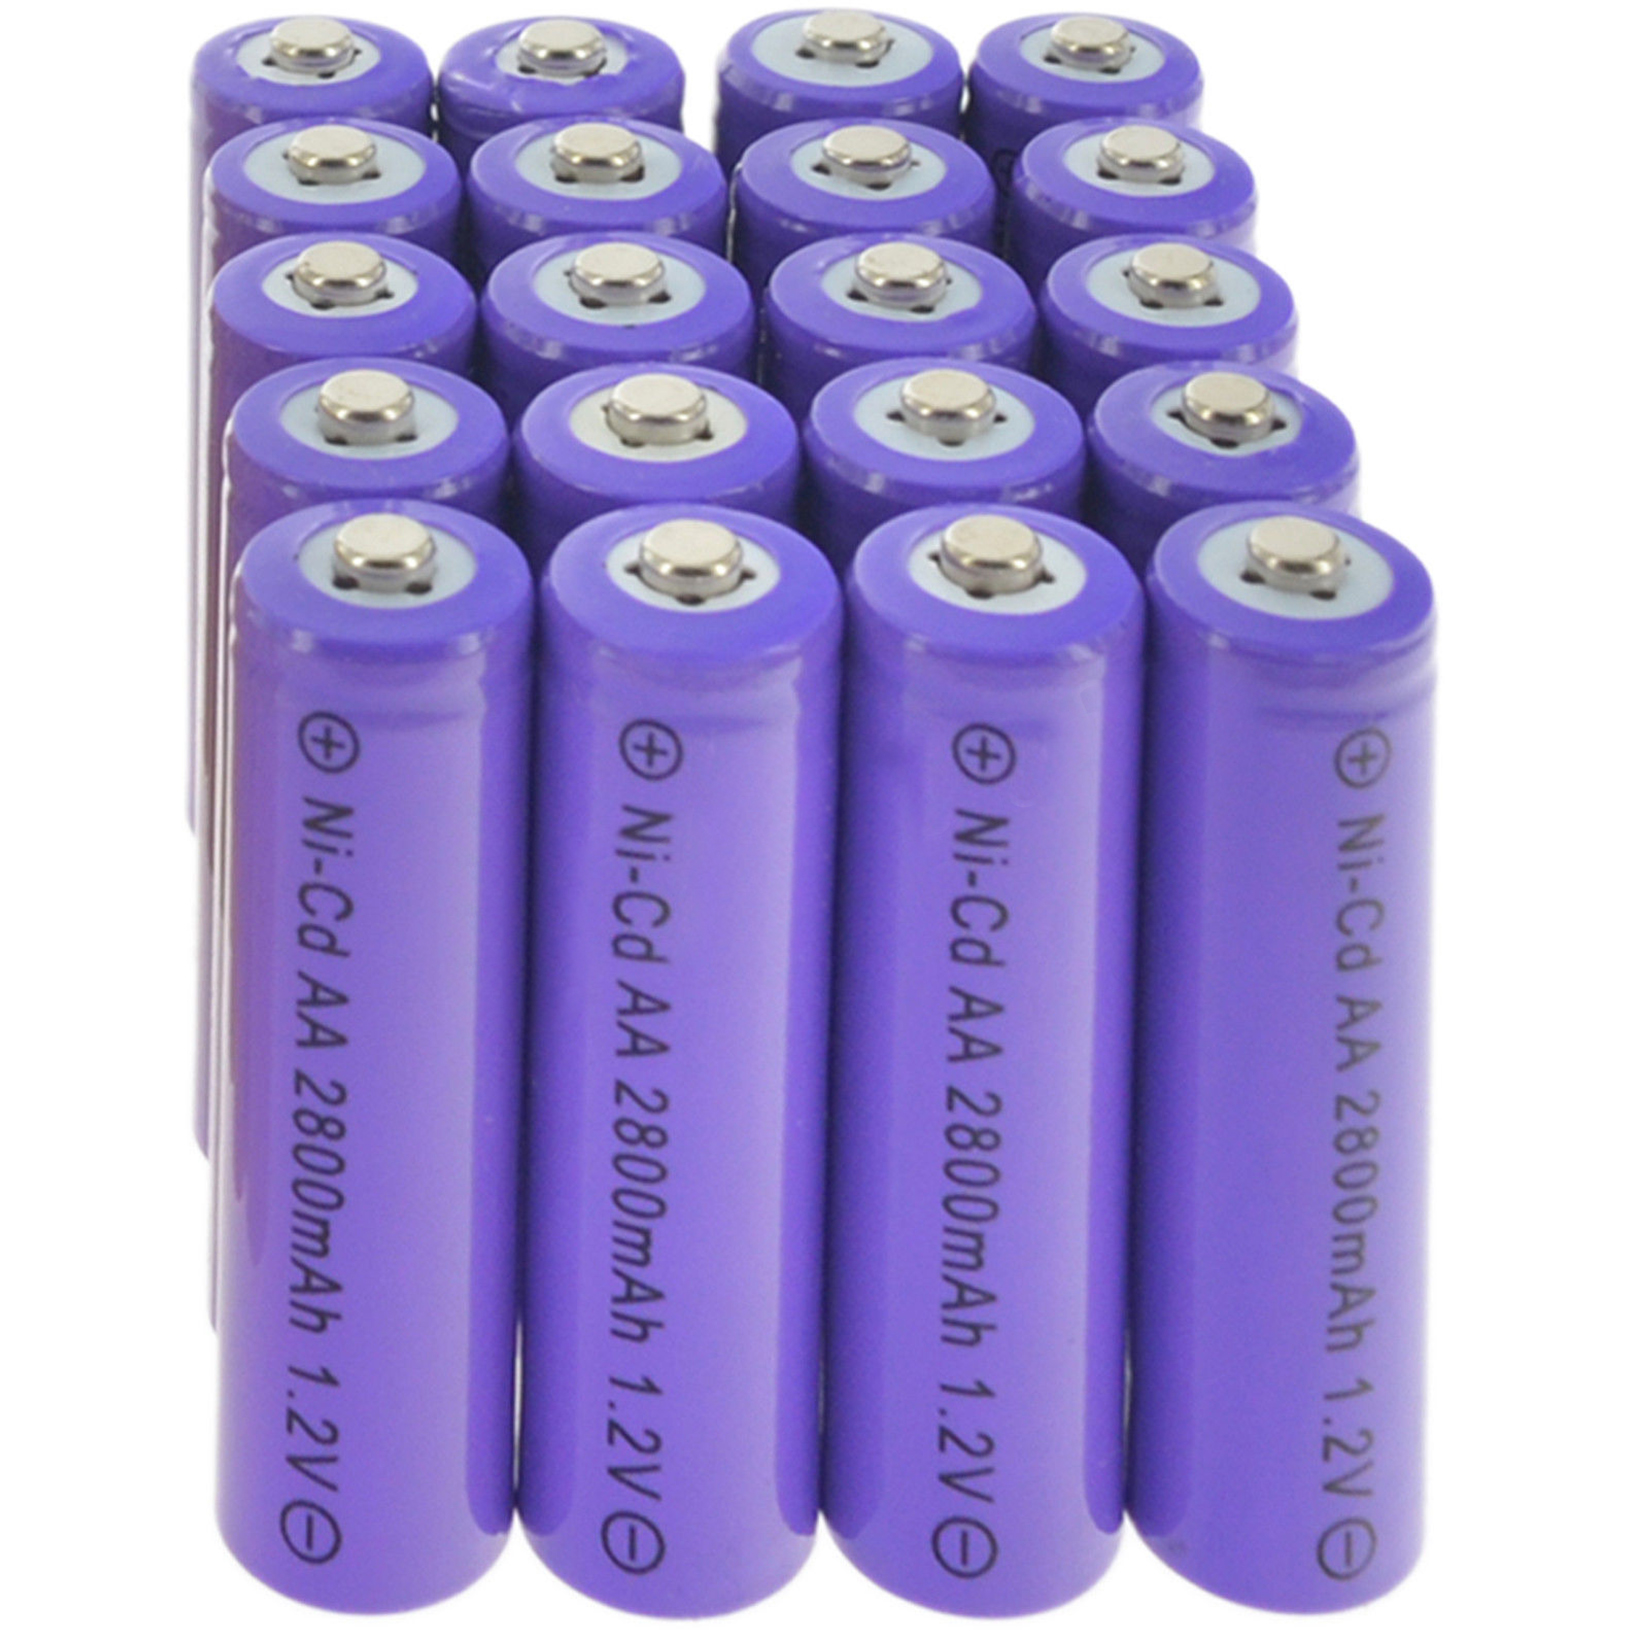 2-24 Lot AA Ni-Cd Rechargeable Battery NiCd 2800mAh 1.2v Garden Solar Light Purple Batteries Cells For Toys